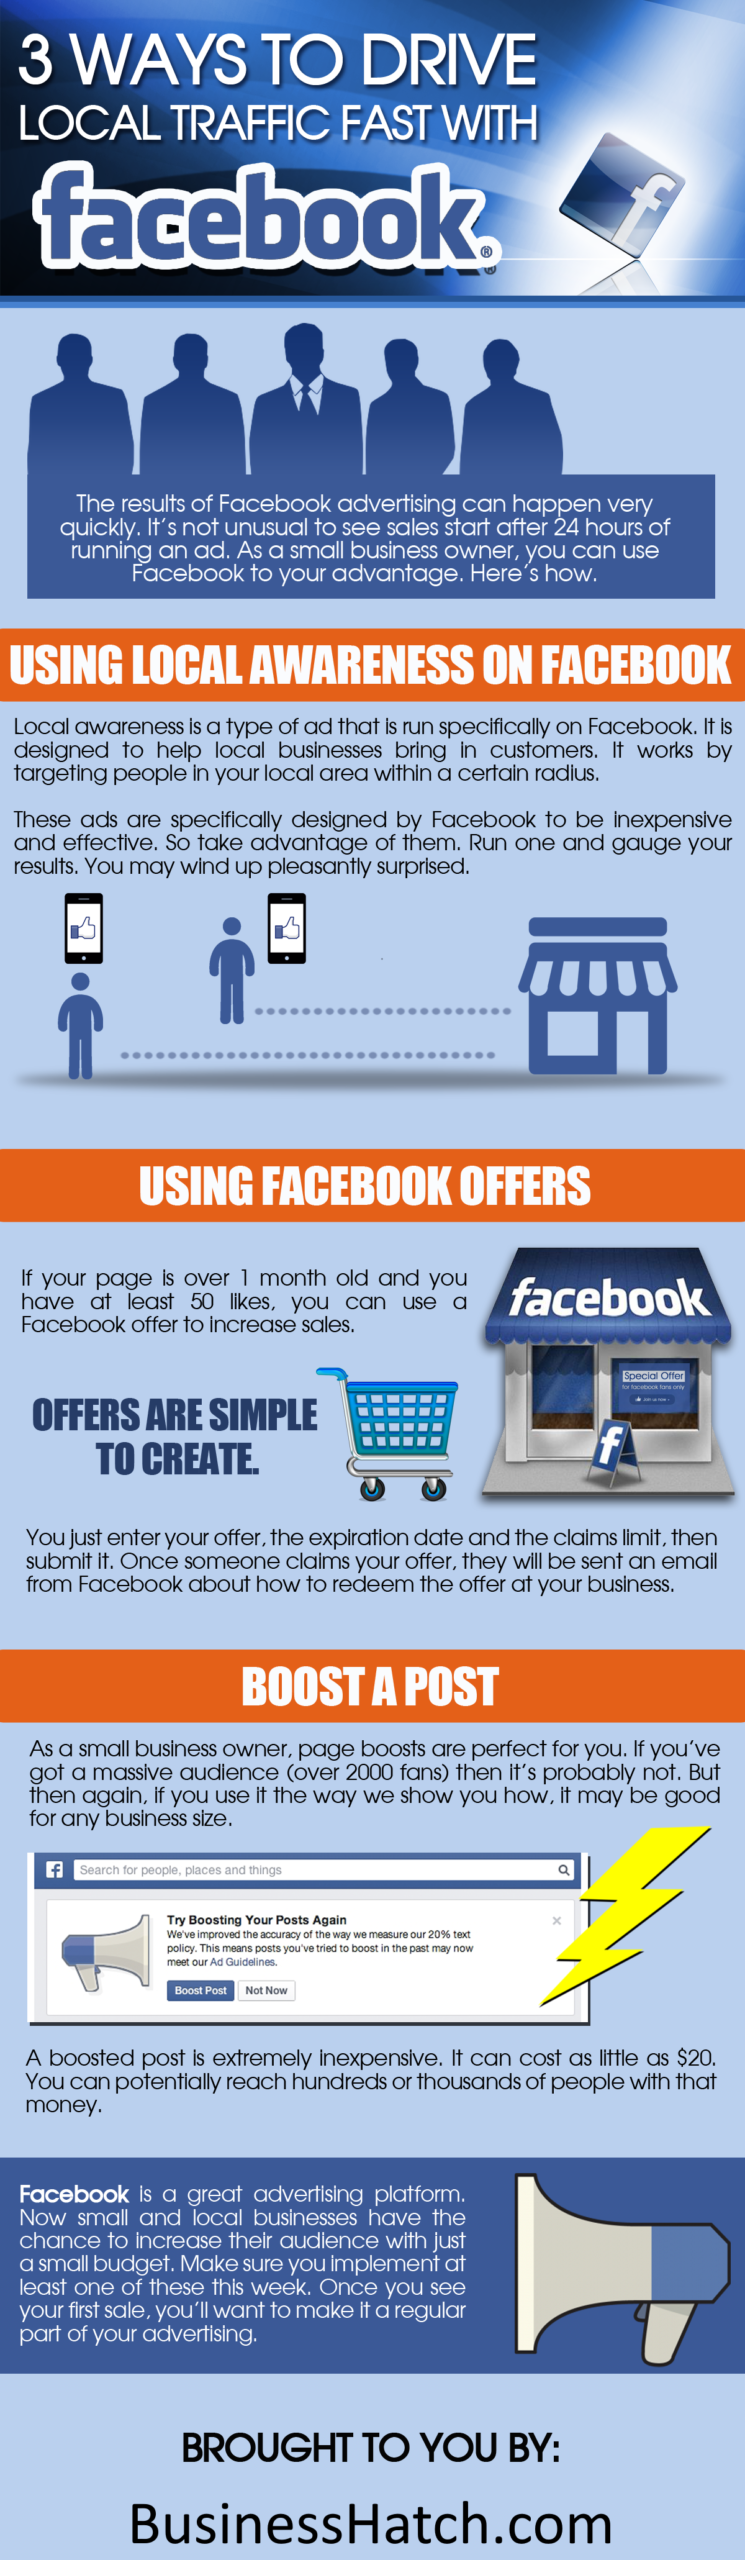 3 Ways to Drive Traffic with Facebook